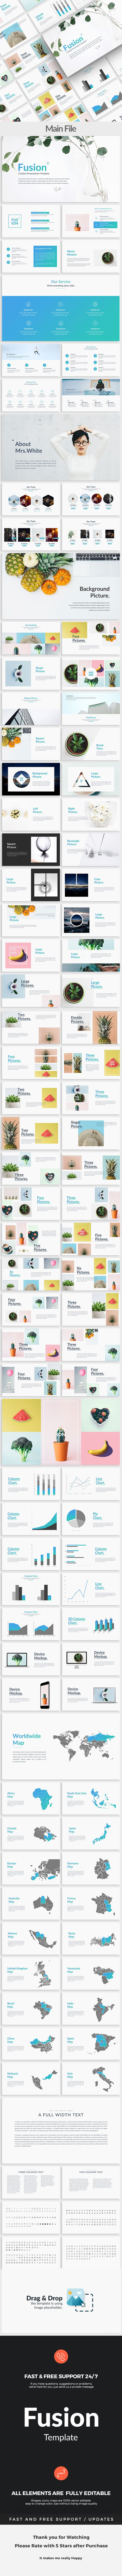 Fusion - Creative Powerpoint Template